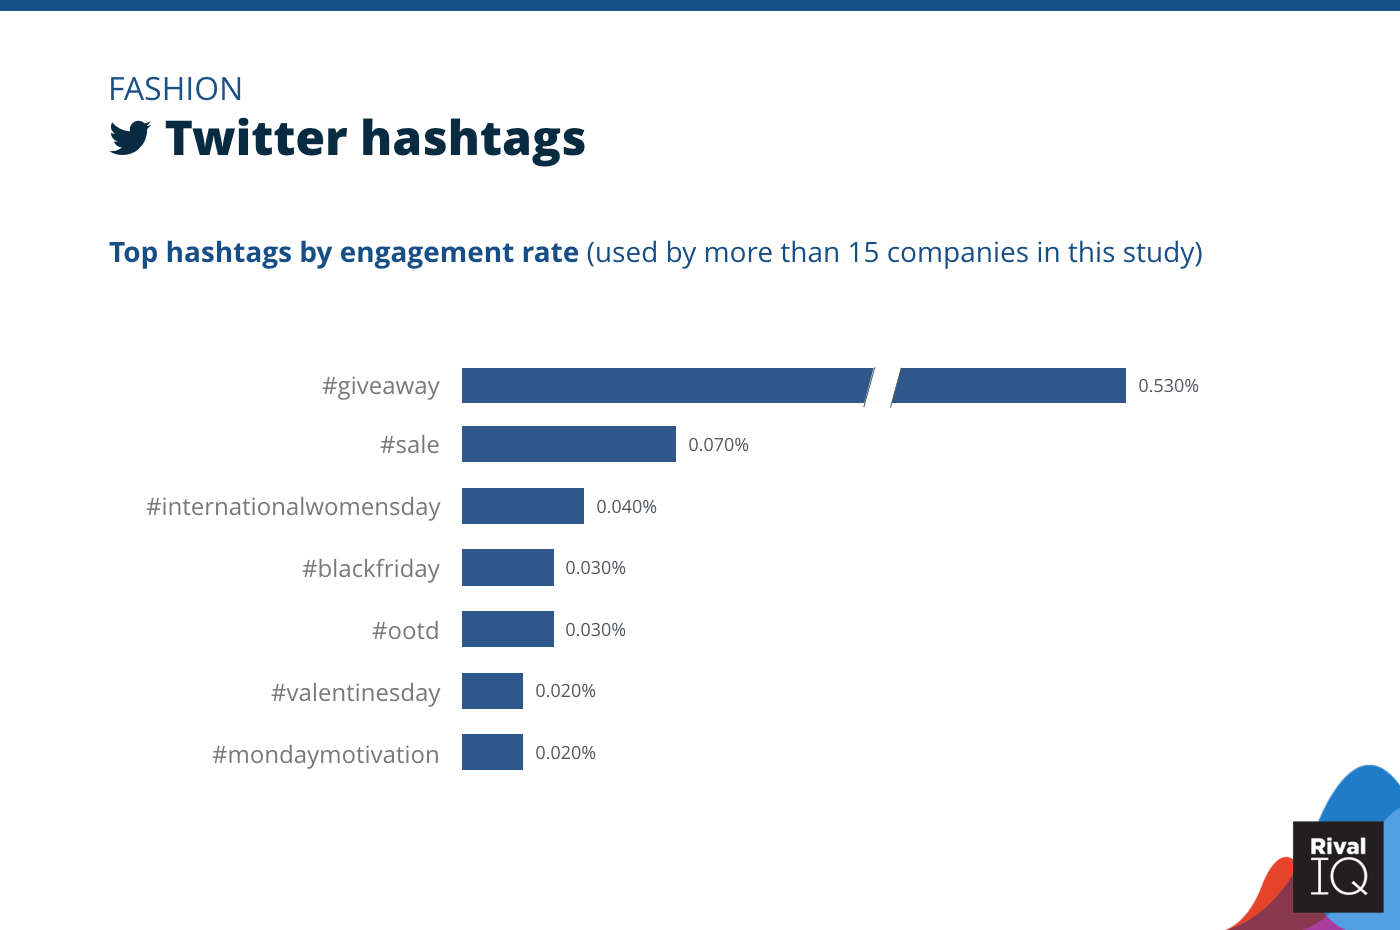 Chart of Top Twitter hashtags by engagement rate, Fashion